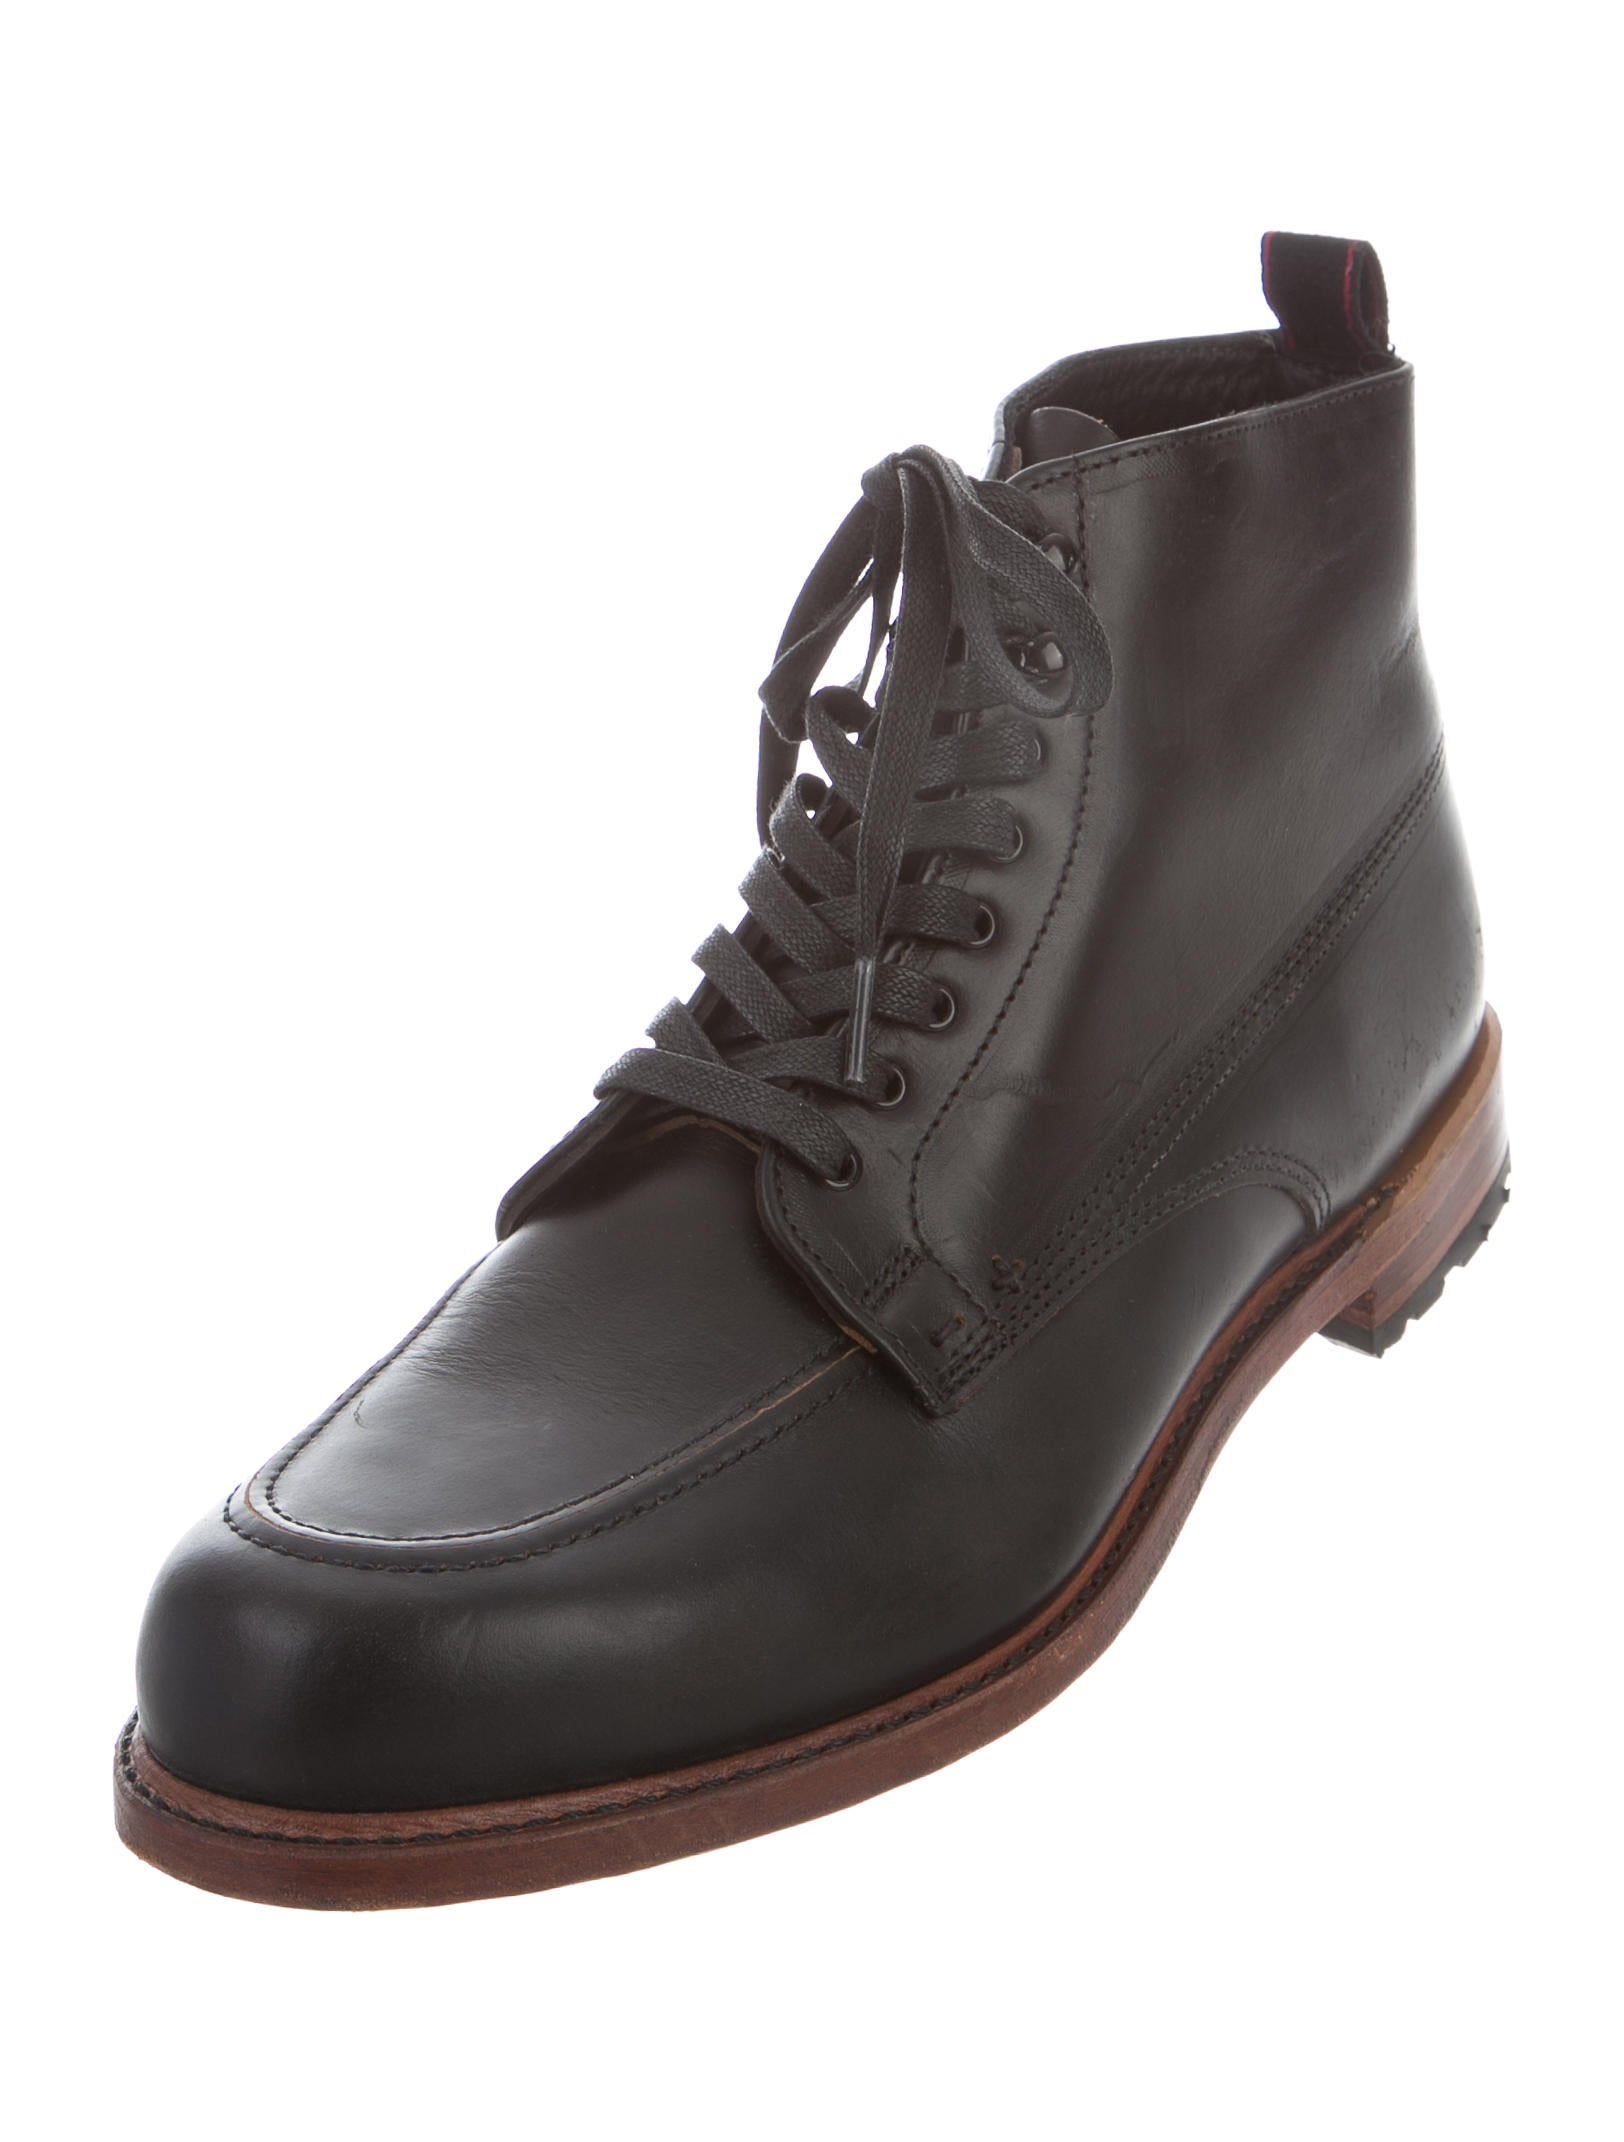 rag bone leather ankle boots shoes wragb70501 the